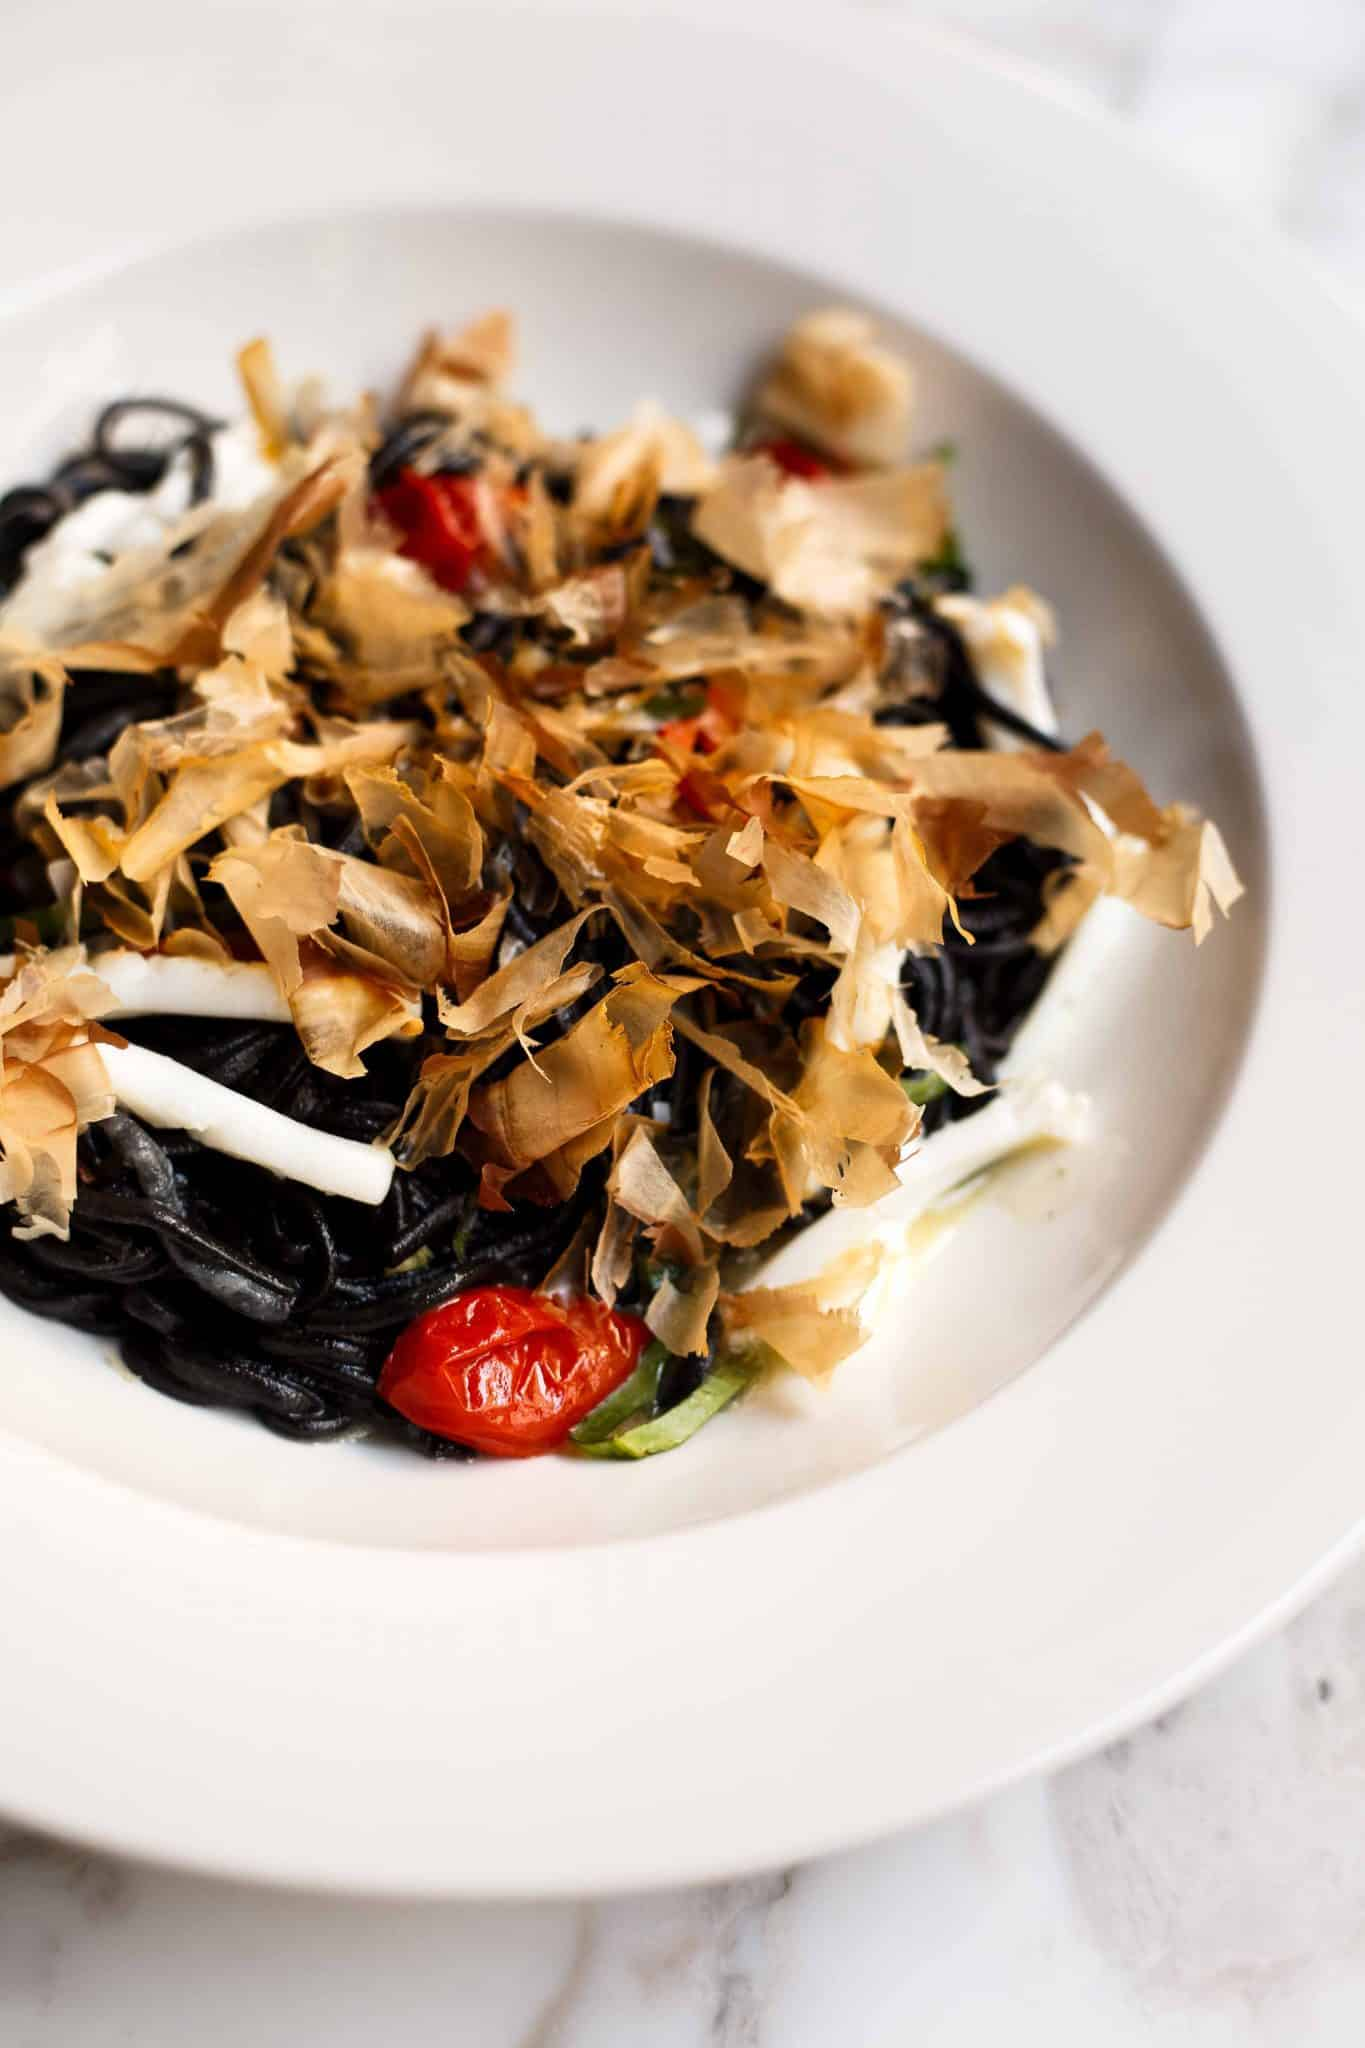 Bancon Golden Square squid ink tagliolini | Photo: Jade Nina Sarkhel